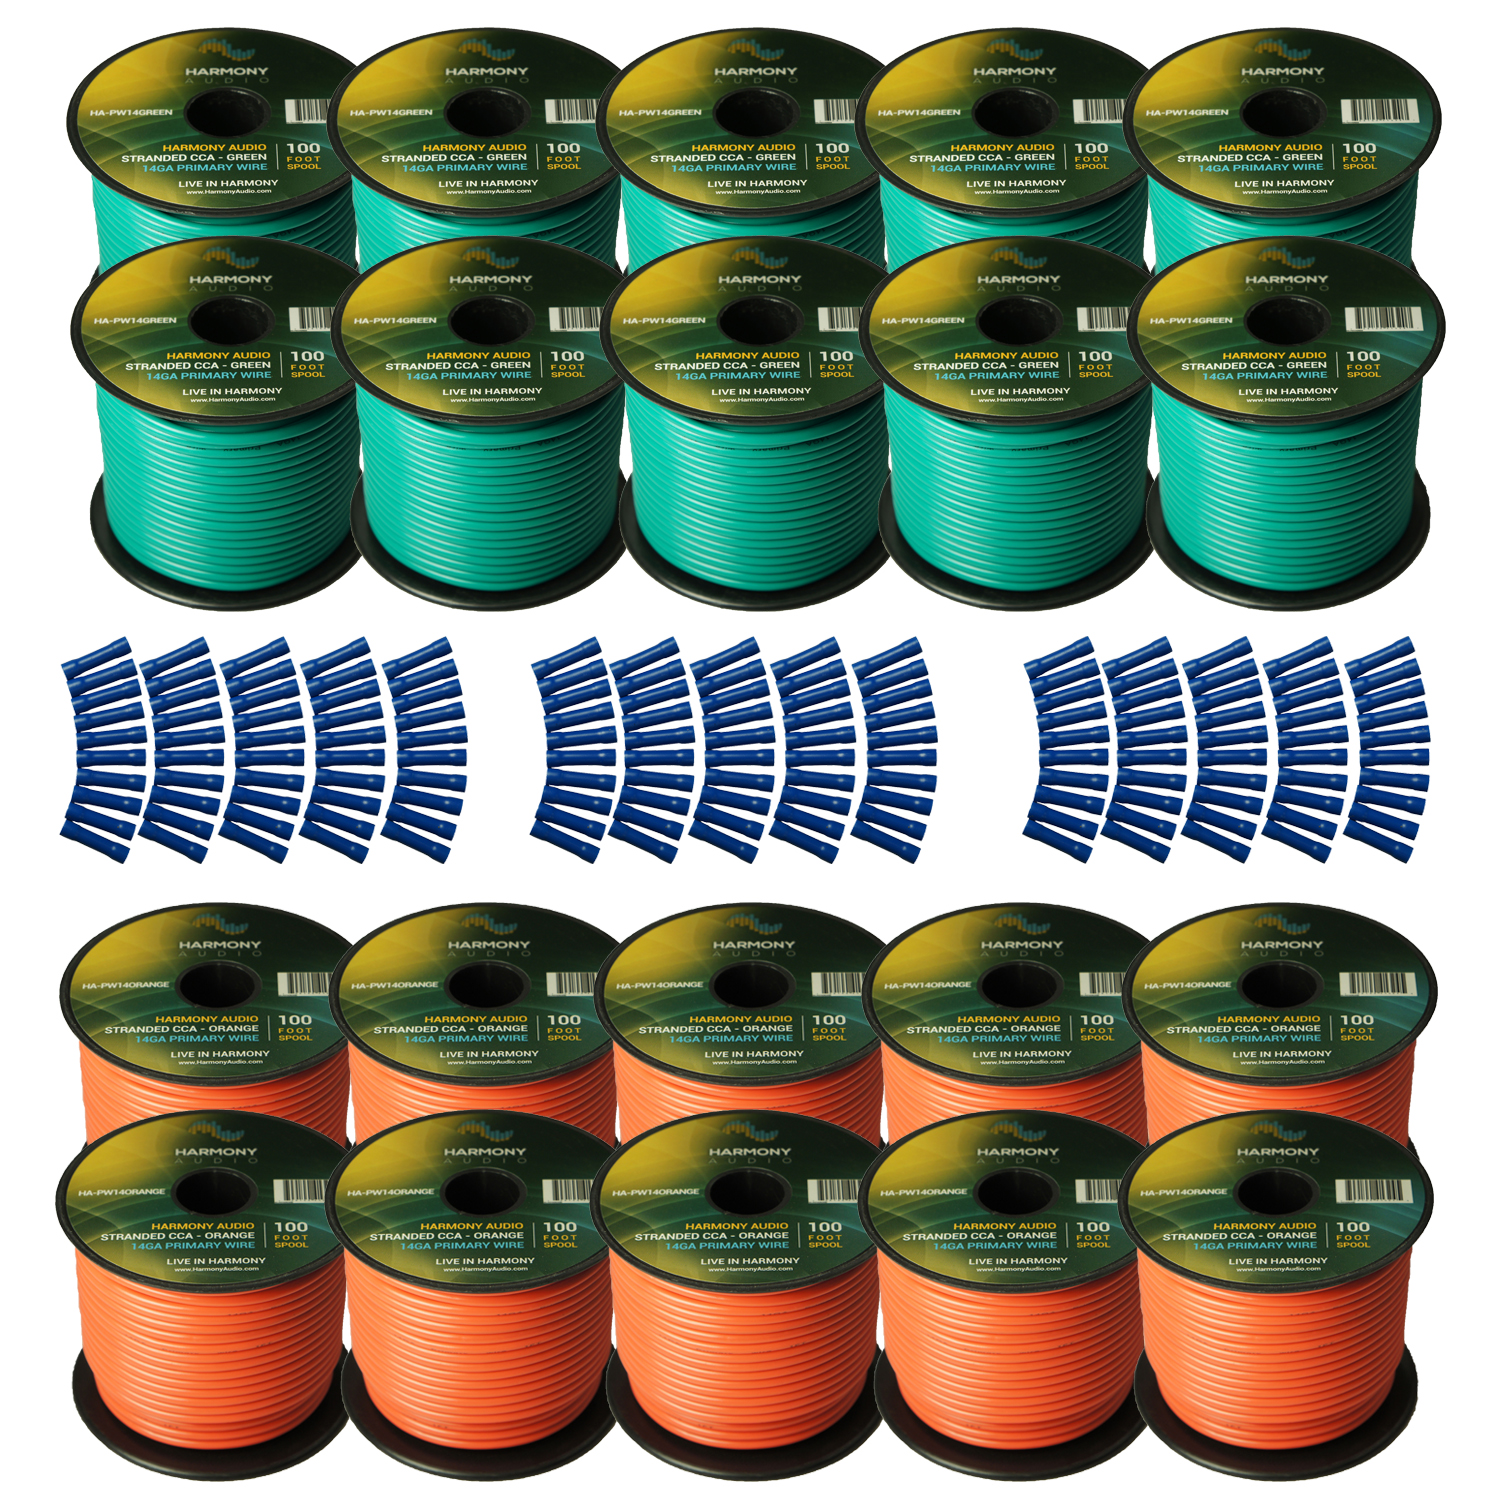 Harmony Audio Primary Single Conductor 14 Gauge Power or Ground Wire - 20 Rolls - 2000 Feet - Green & Orange for Car Audio / Trailer / Model Train / Remote